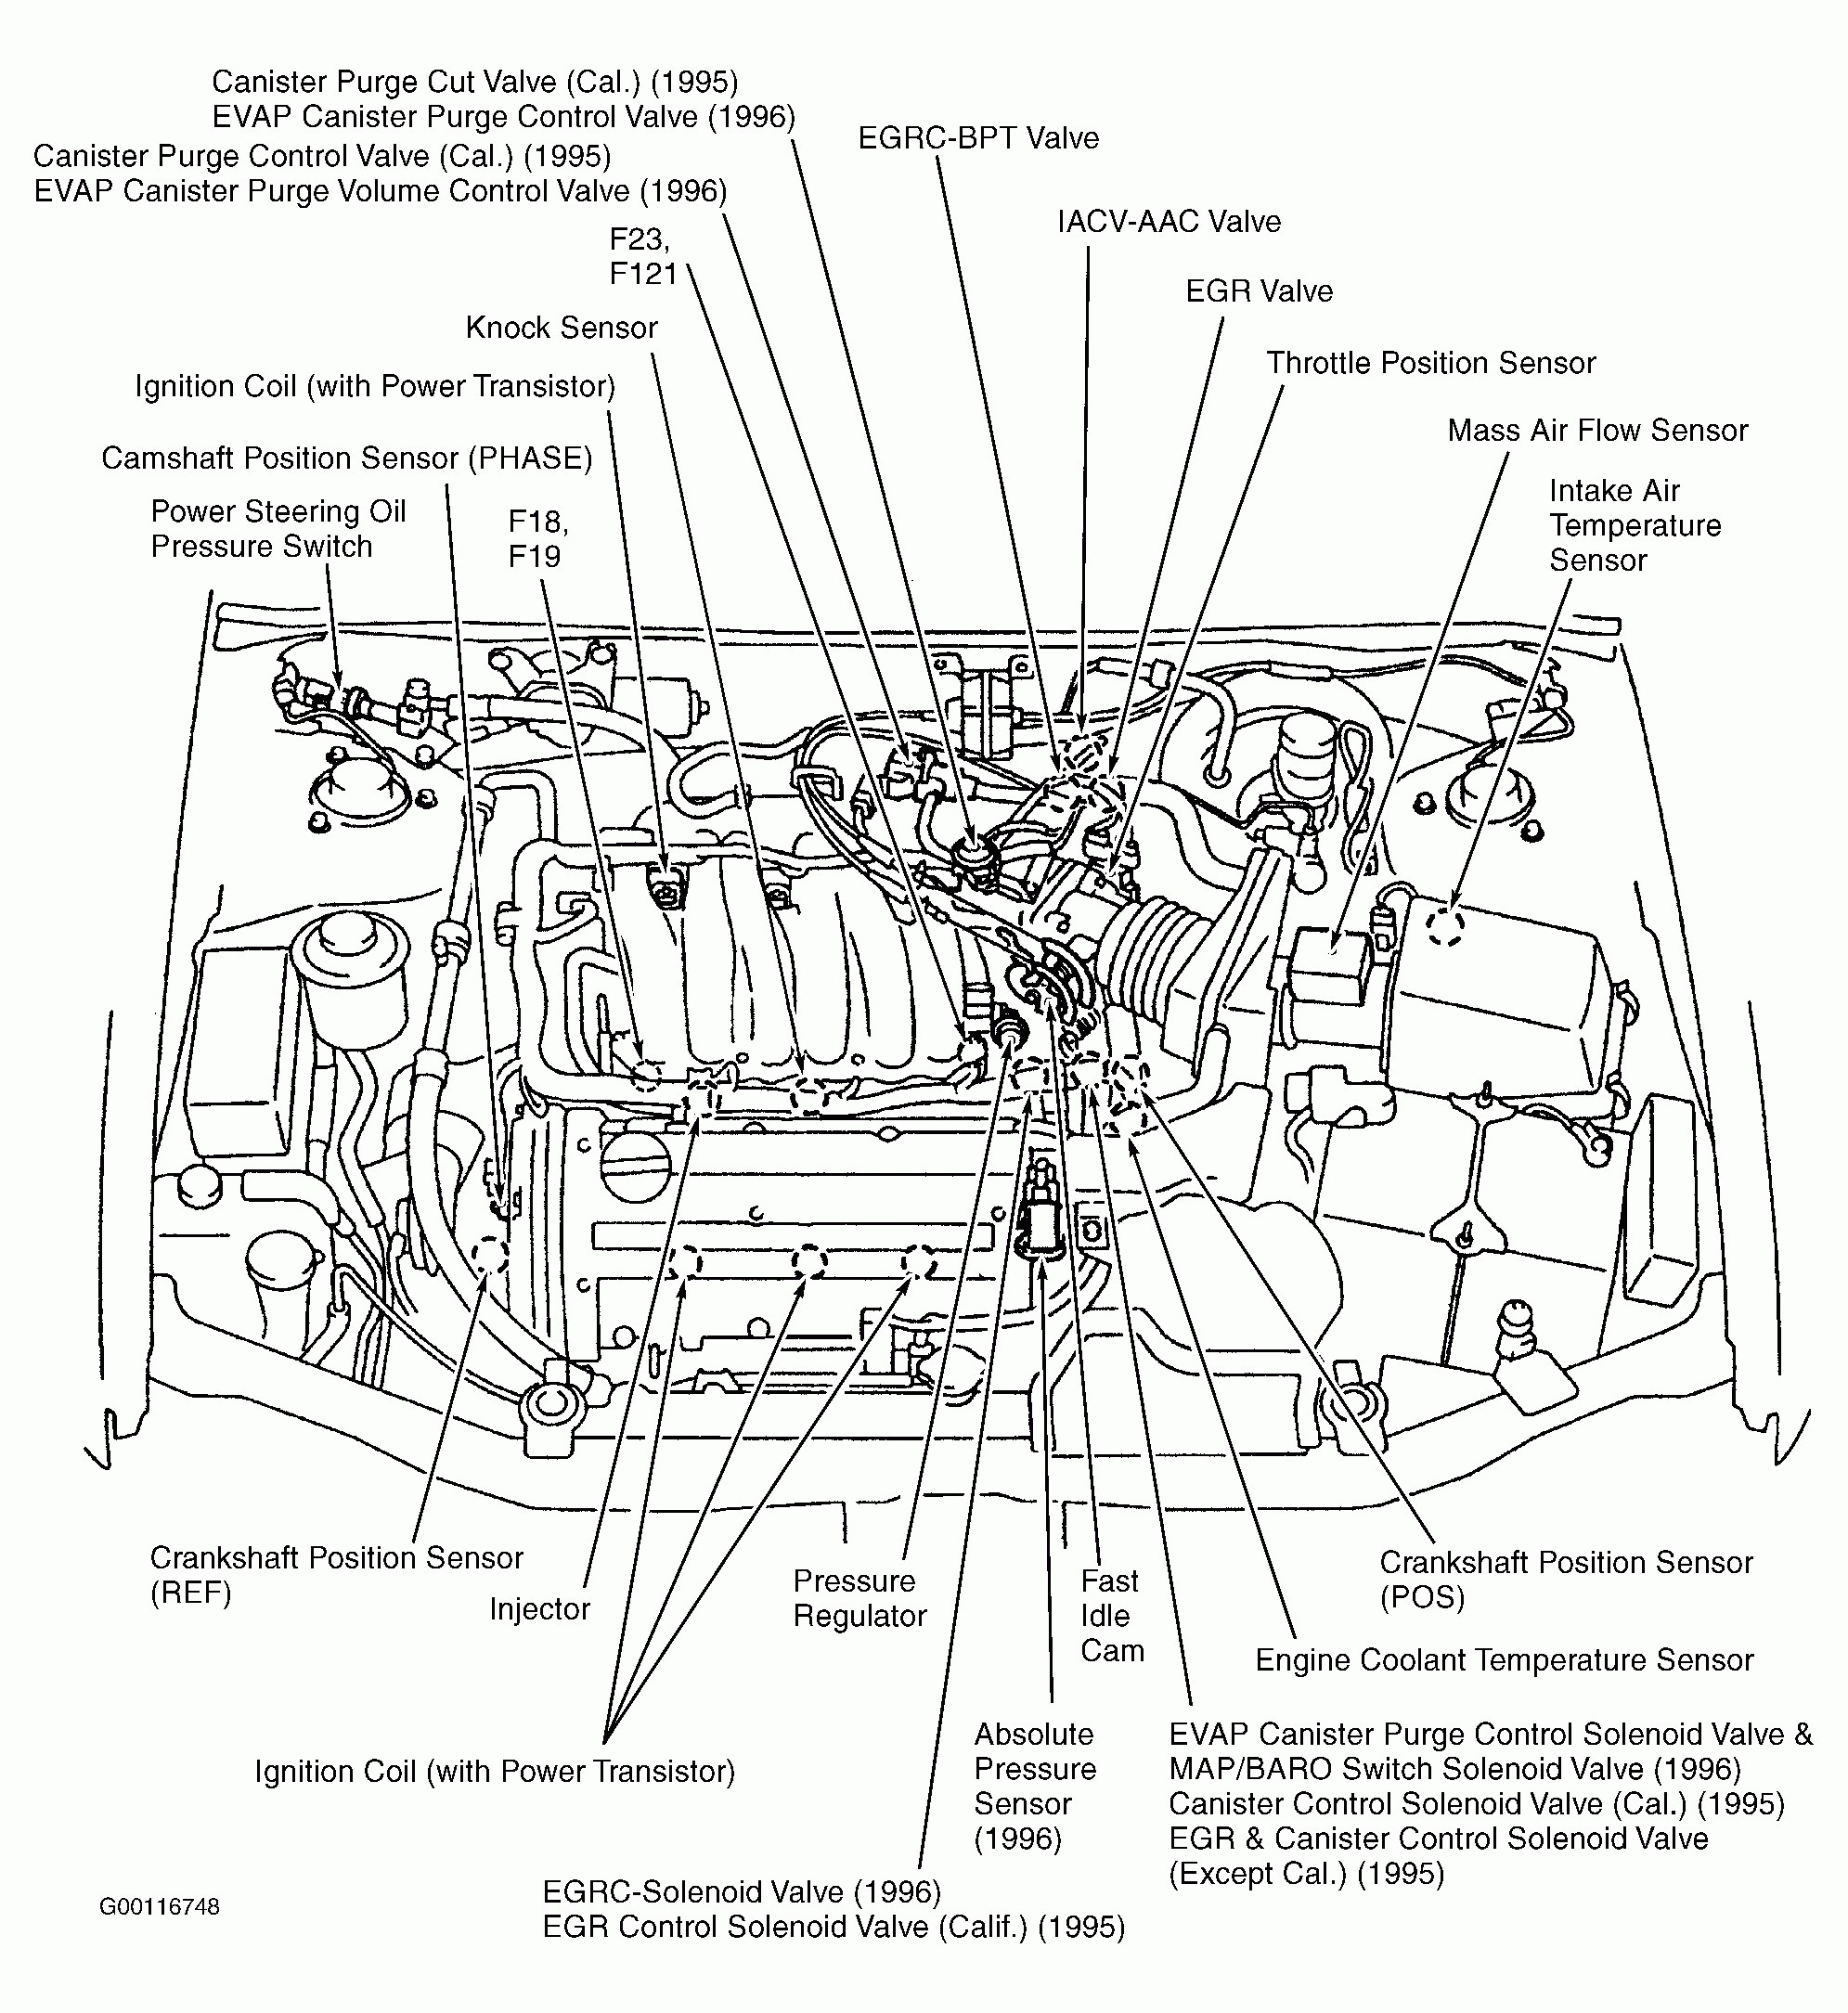 2003 Nissan Altima Engine Diagram 2010 Altima Engine Diagram Car Fuse Box Wiring Diagram • Of 2003 Nissan Altima Engine Diagram